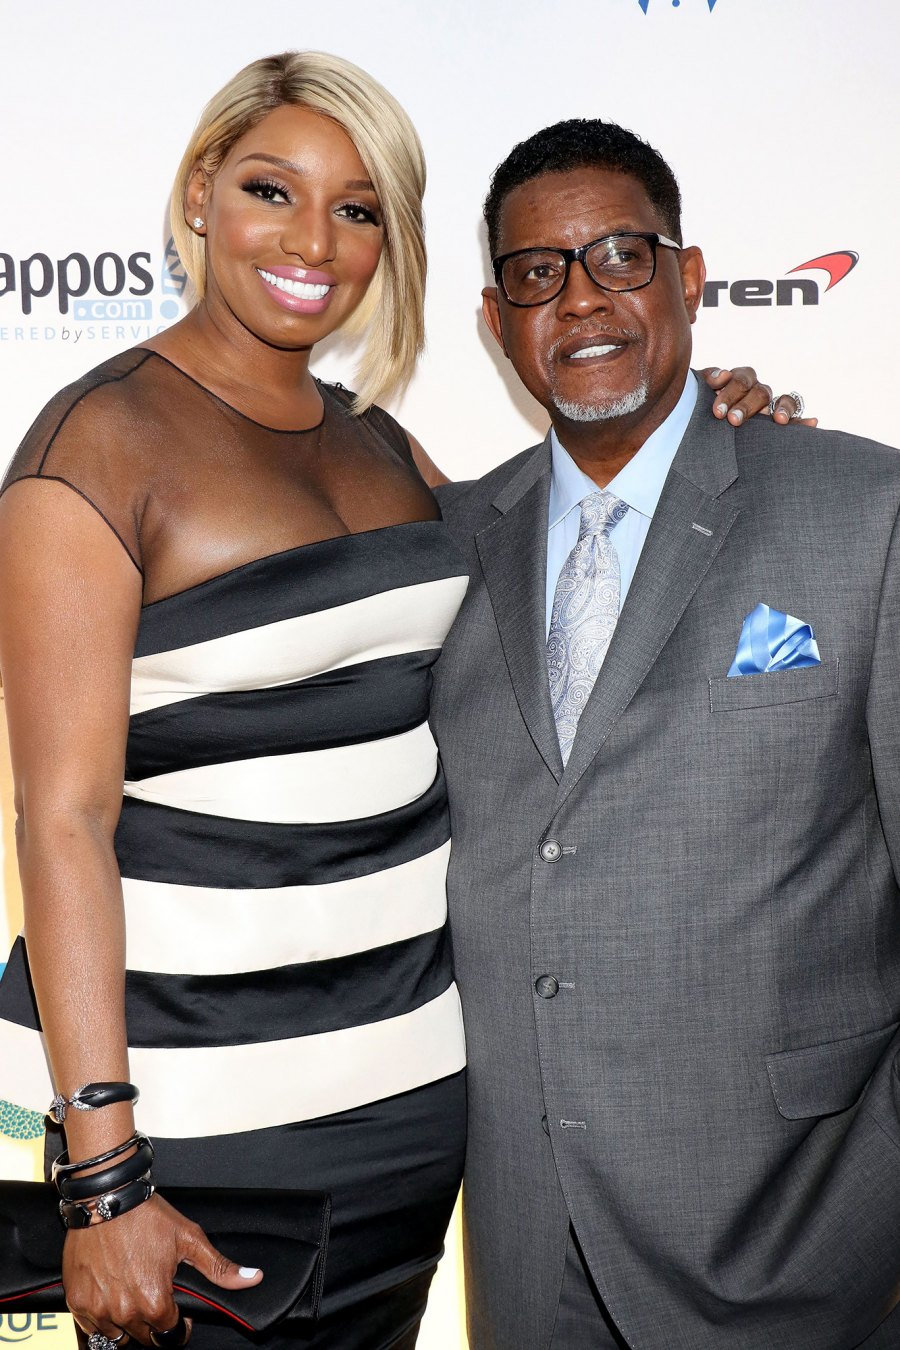 Nene Leakes Says Gregg Is Dying Amid Cancer Battle: 'My Husband Is Transitioning to the Other Side'